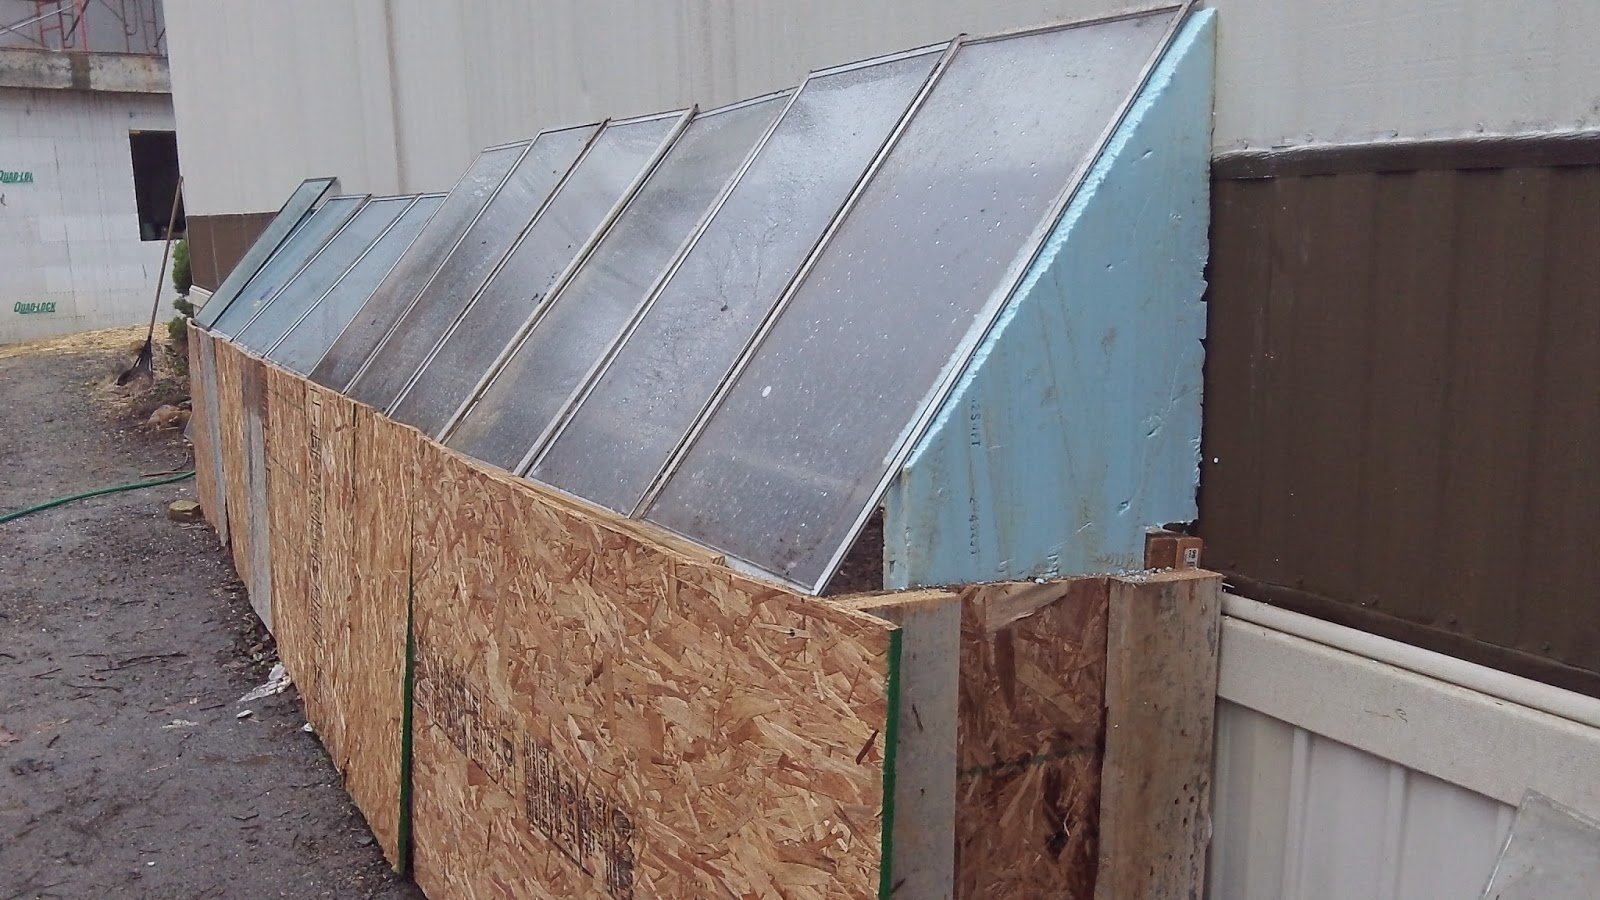 Mini greenhouse made from recovered materials